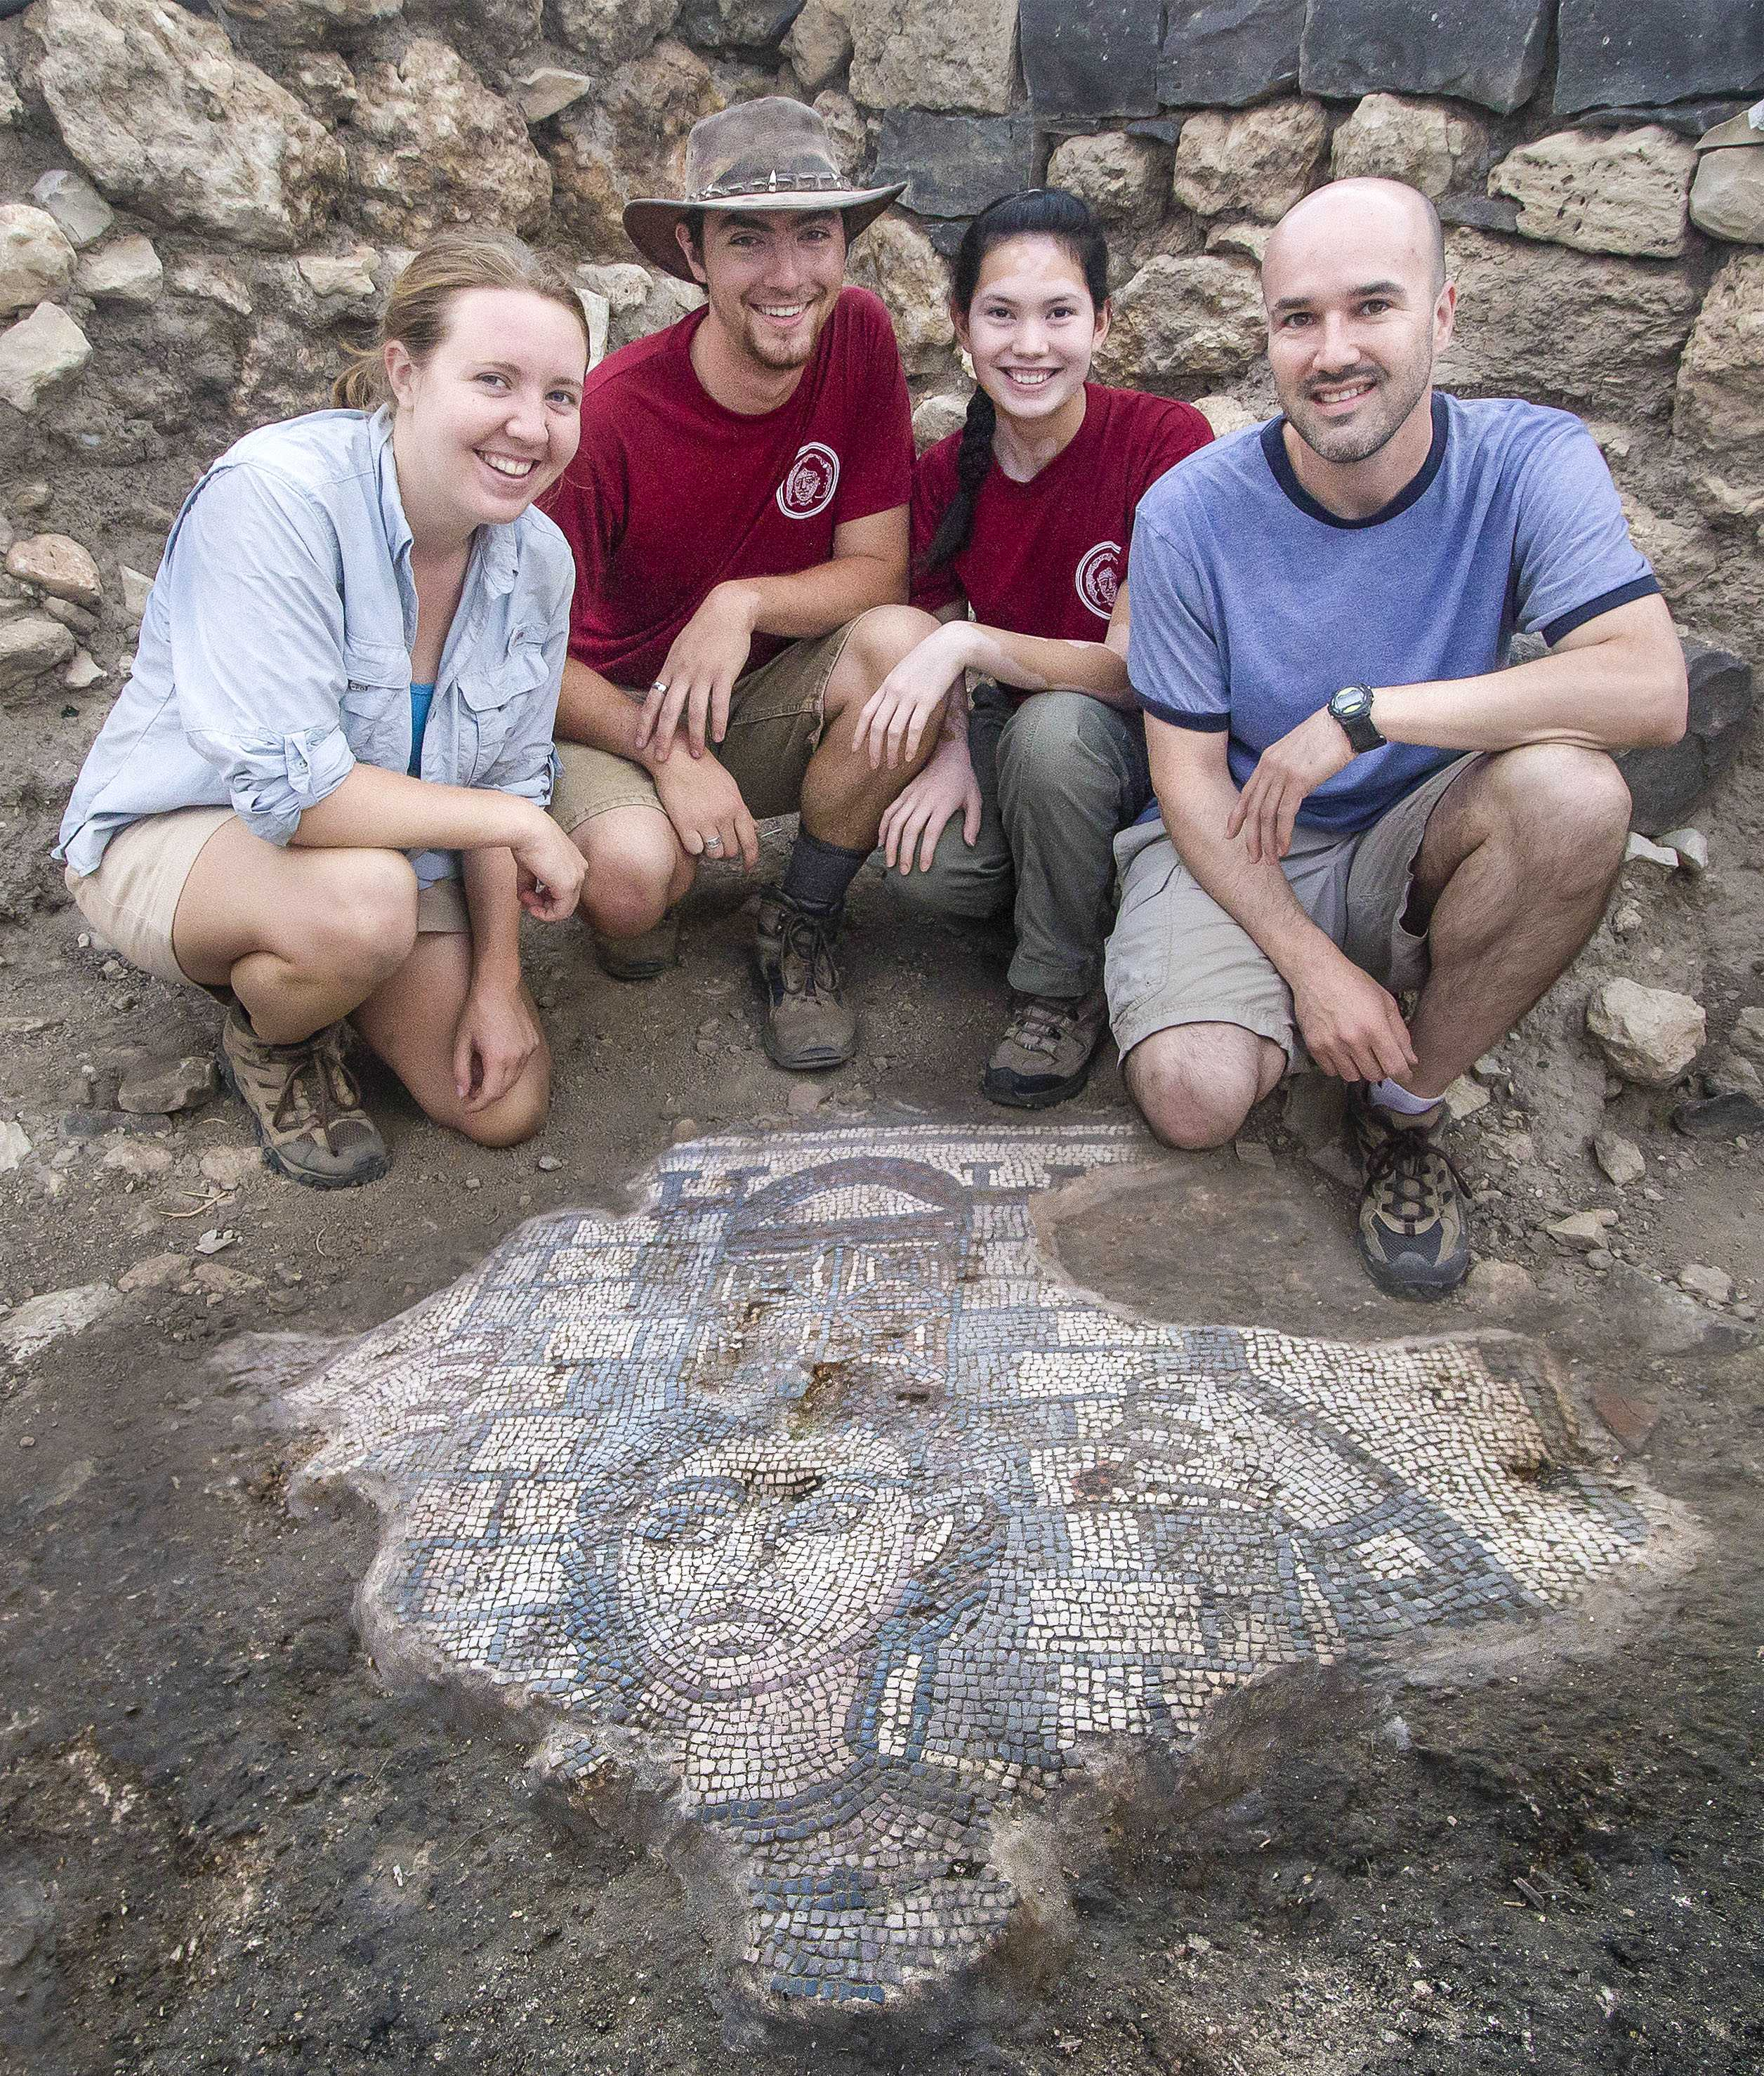 Archaeological adventure: uncovering history in Israel